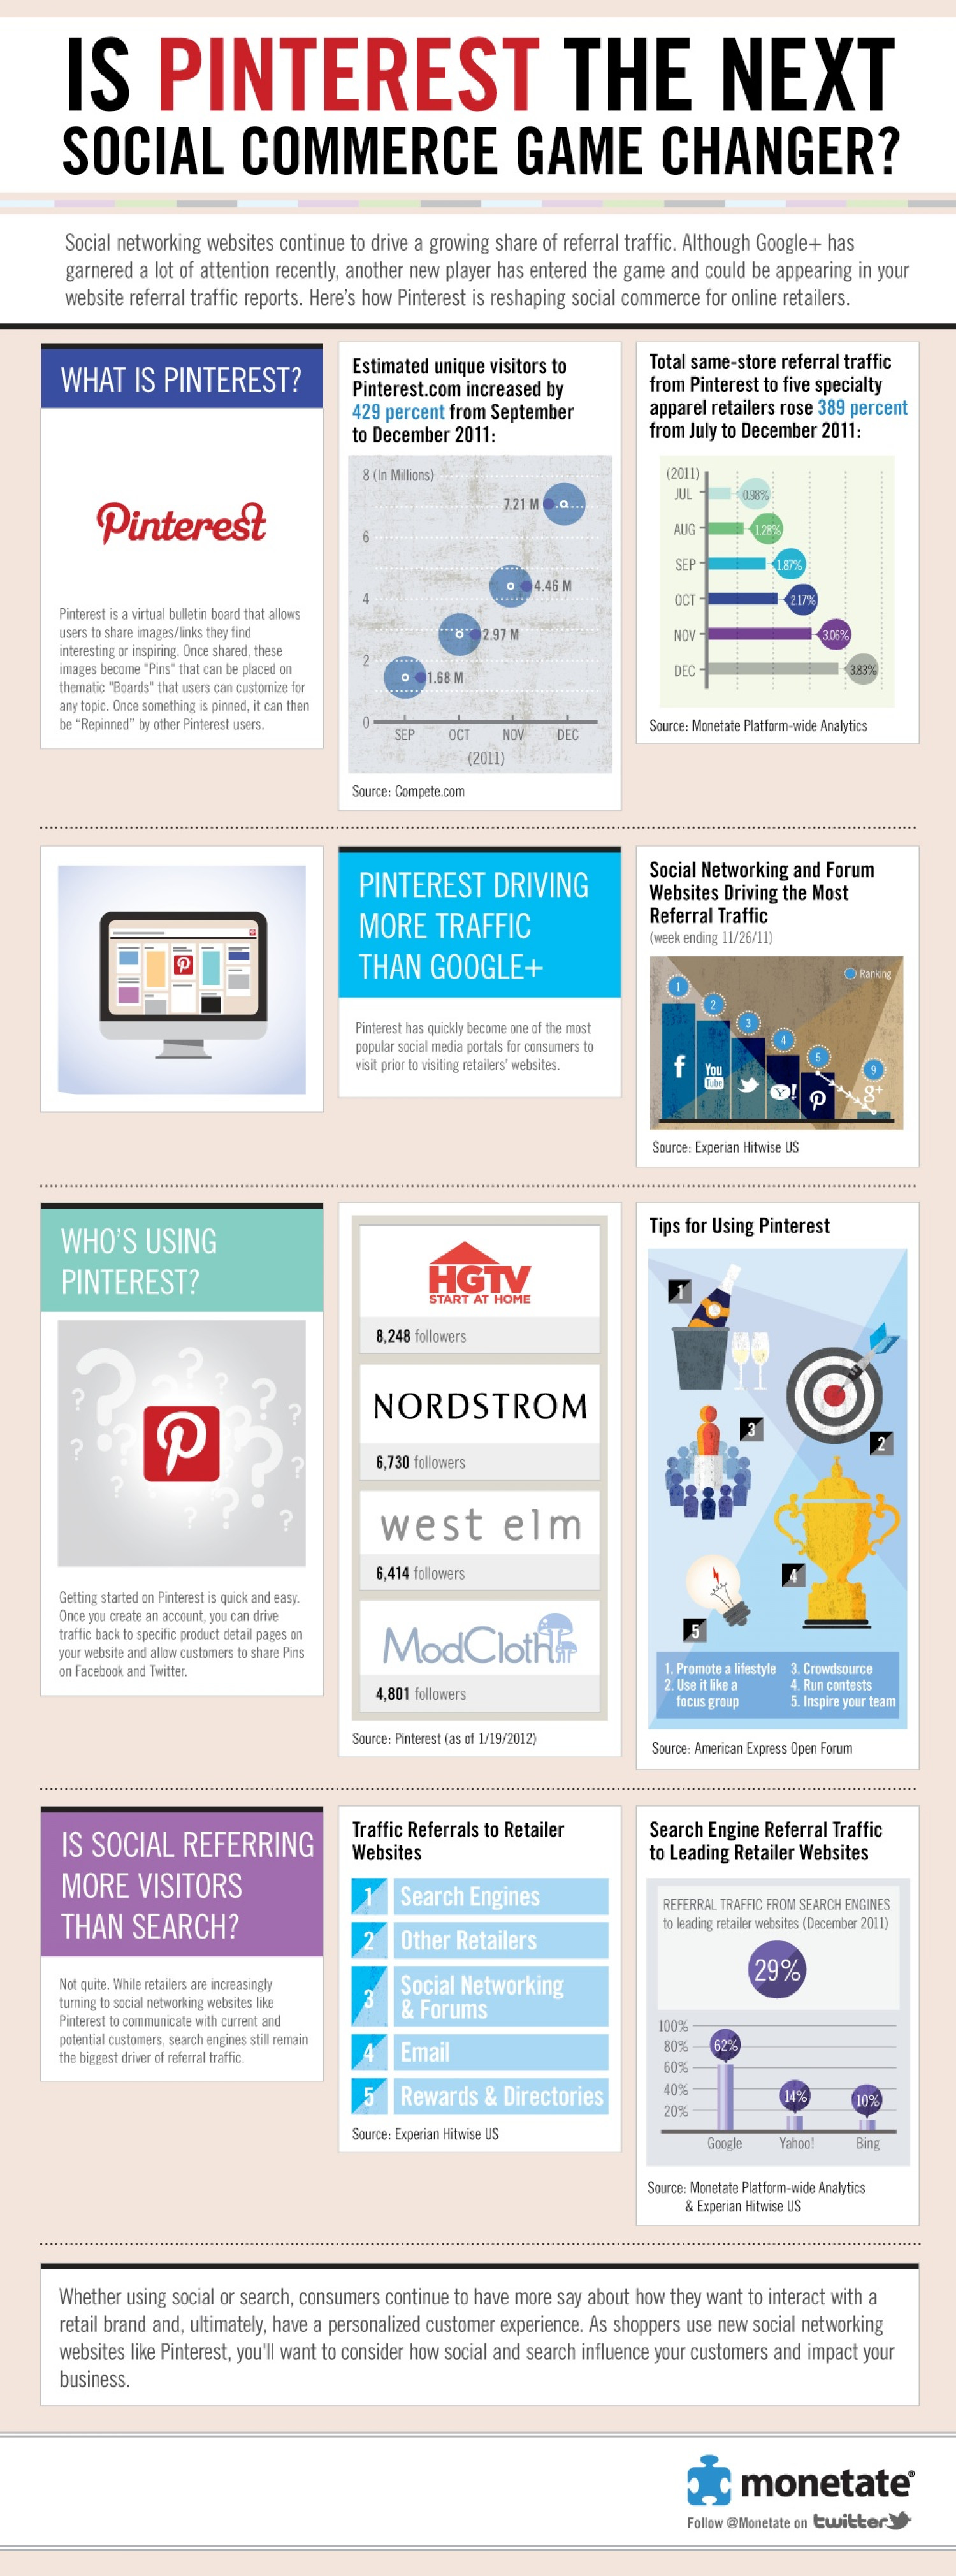 Pinterest: A Game Changer? Infographic